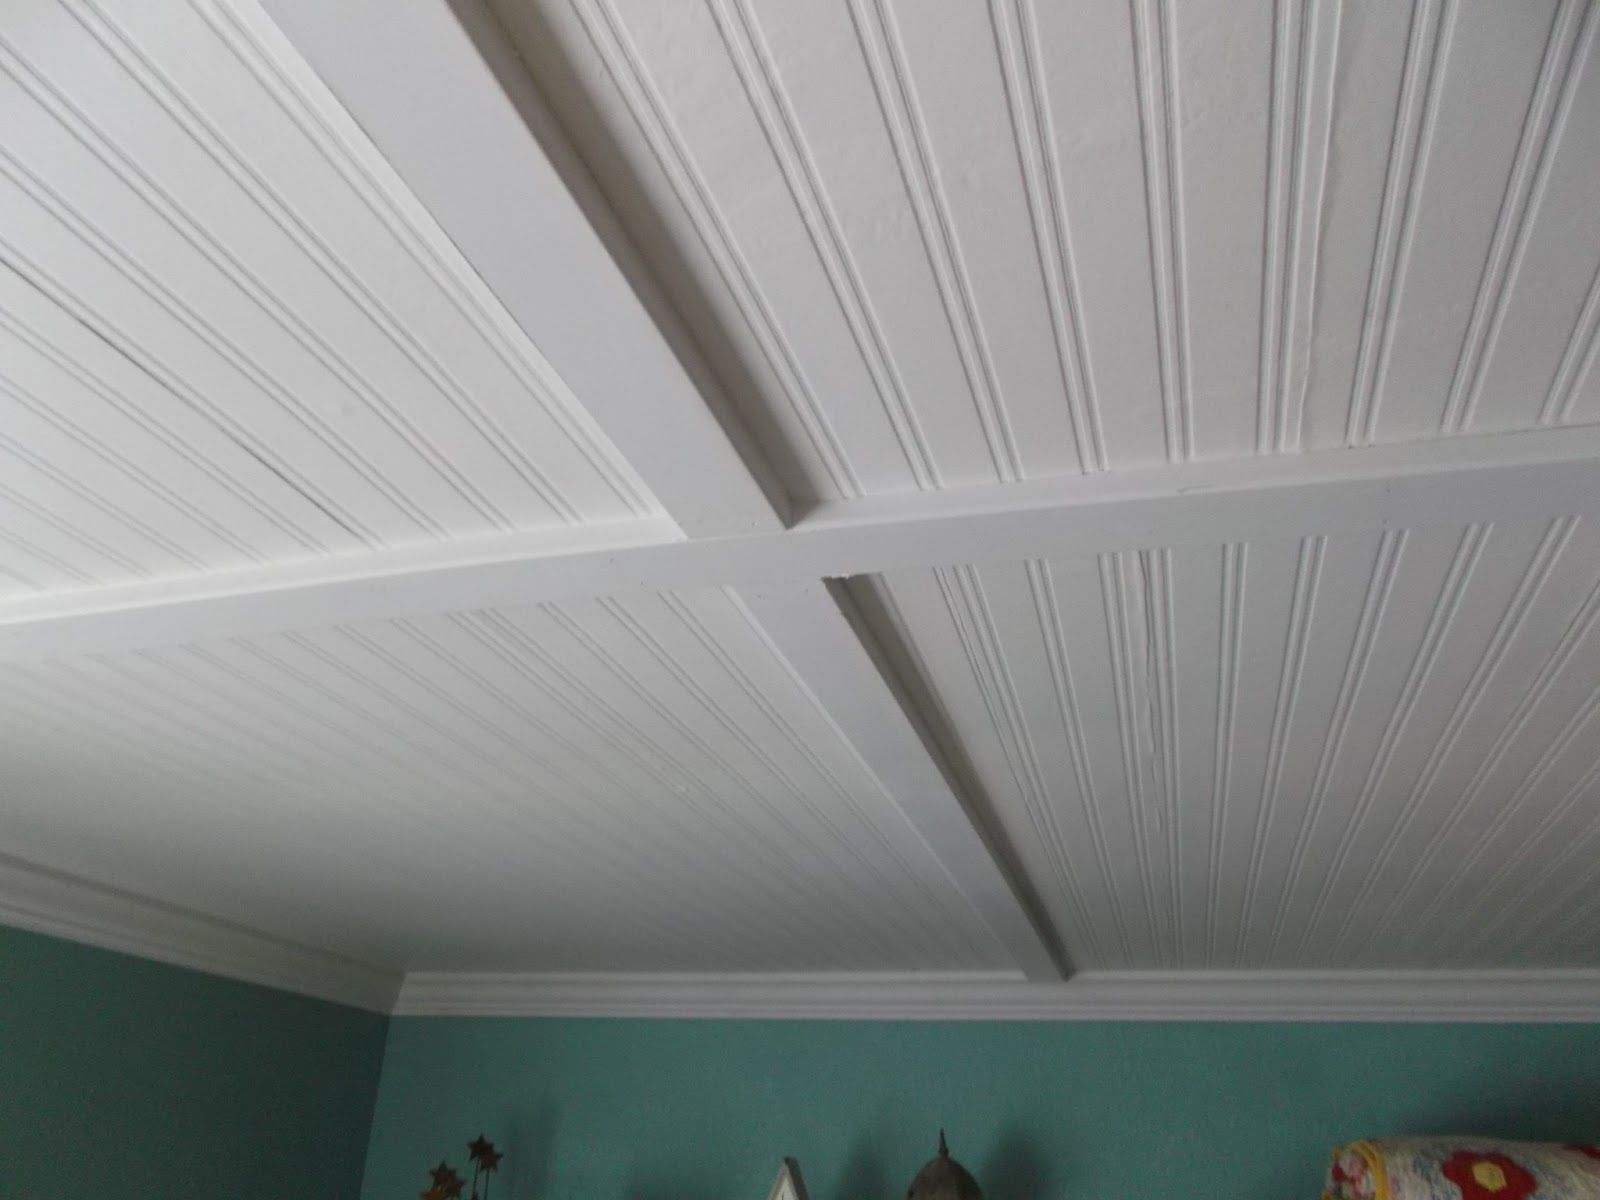 Ceiling Drop Ceiling Tiles 2x4 Laminate Ceiling Planks Basement Ceiling Ideas On A Budget Drop Cei Covering Popcorn Ceiling Beadboard Wallpaper Popcorn Ceiling